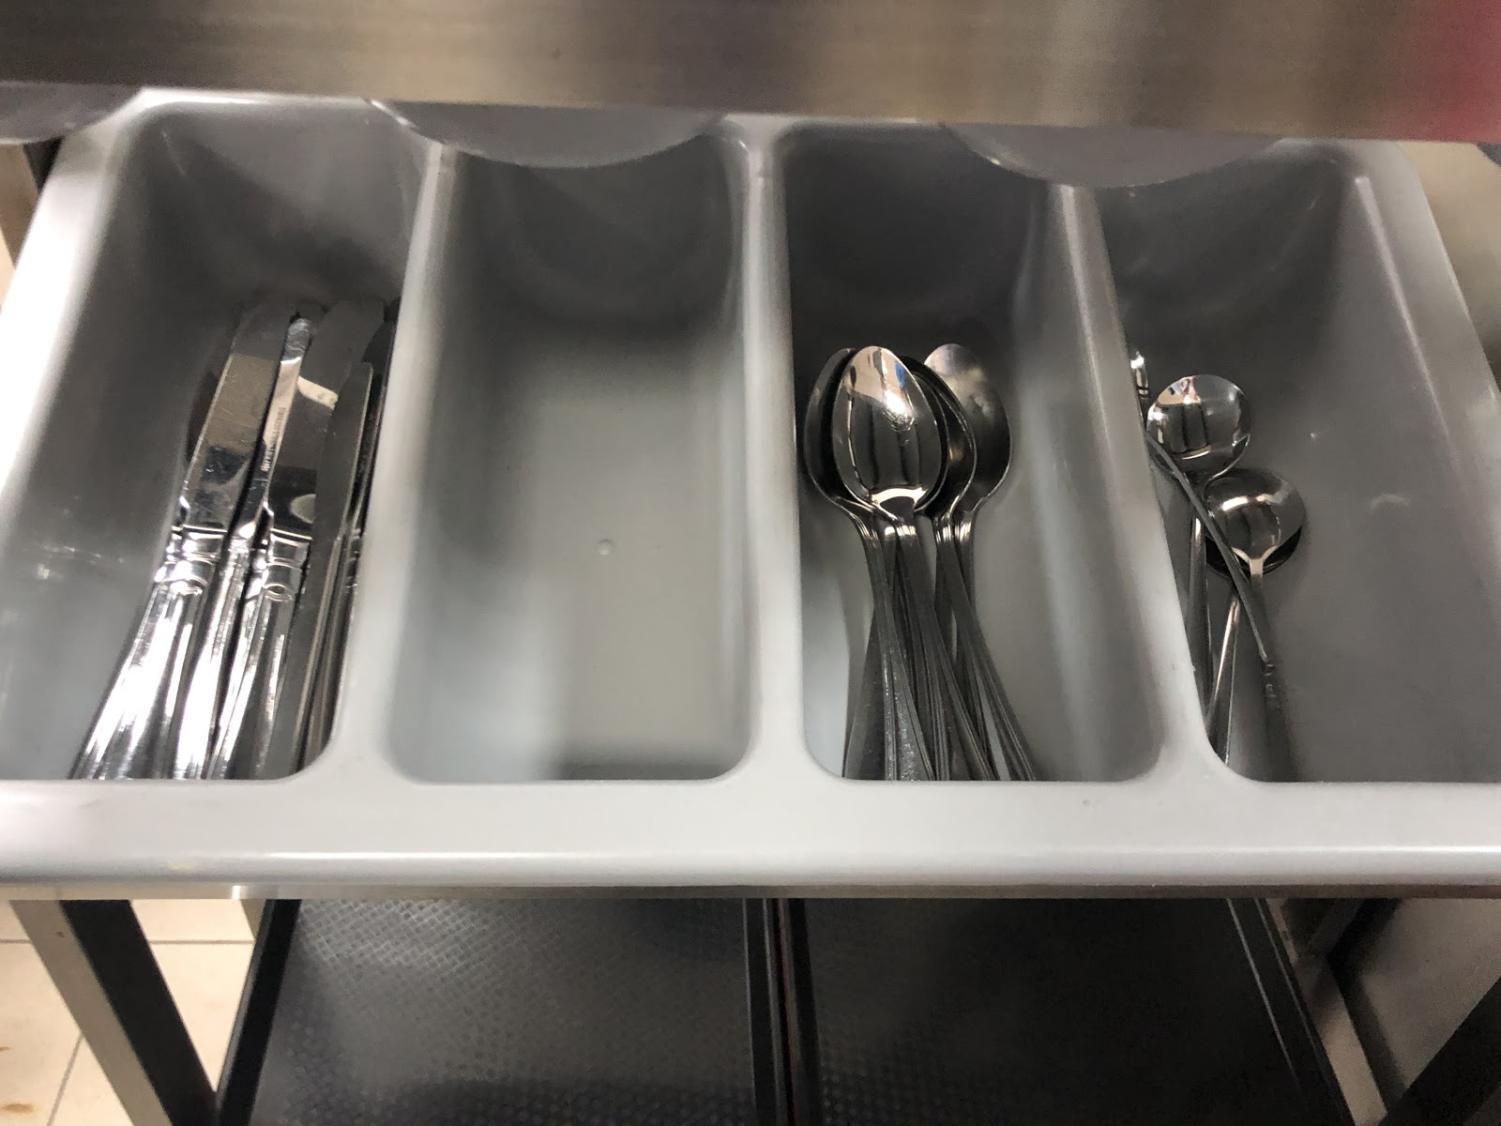 This photo of a cafeteria utensil bin was taken three minutes after the start of the HS lunch period.